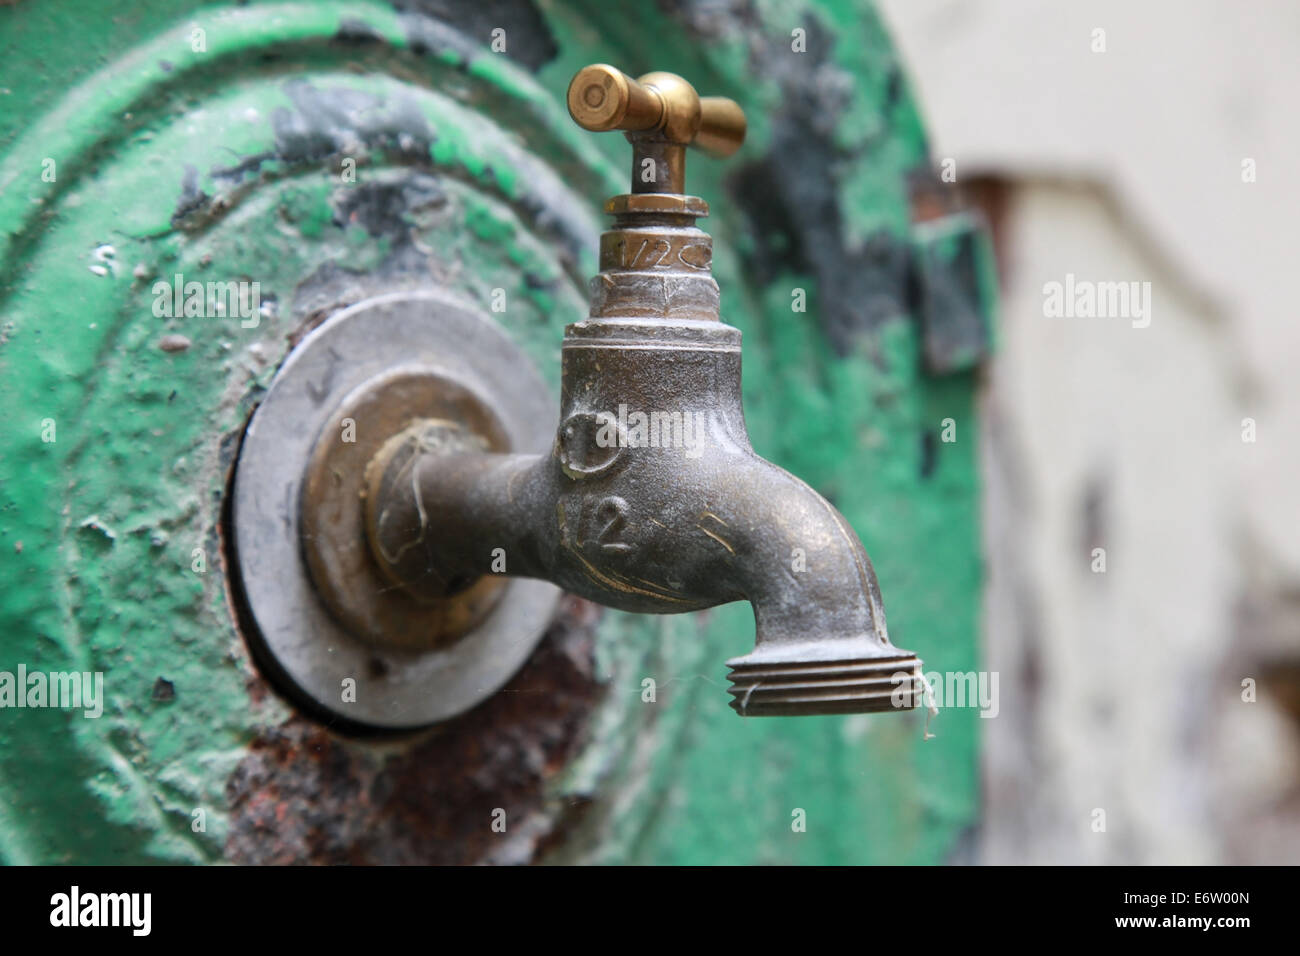 Old Outdoor Spigot Stock Photos & Old Outdoor Spigot Stock Images ...